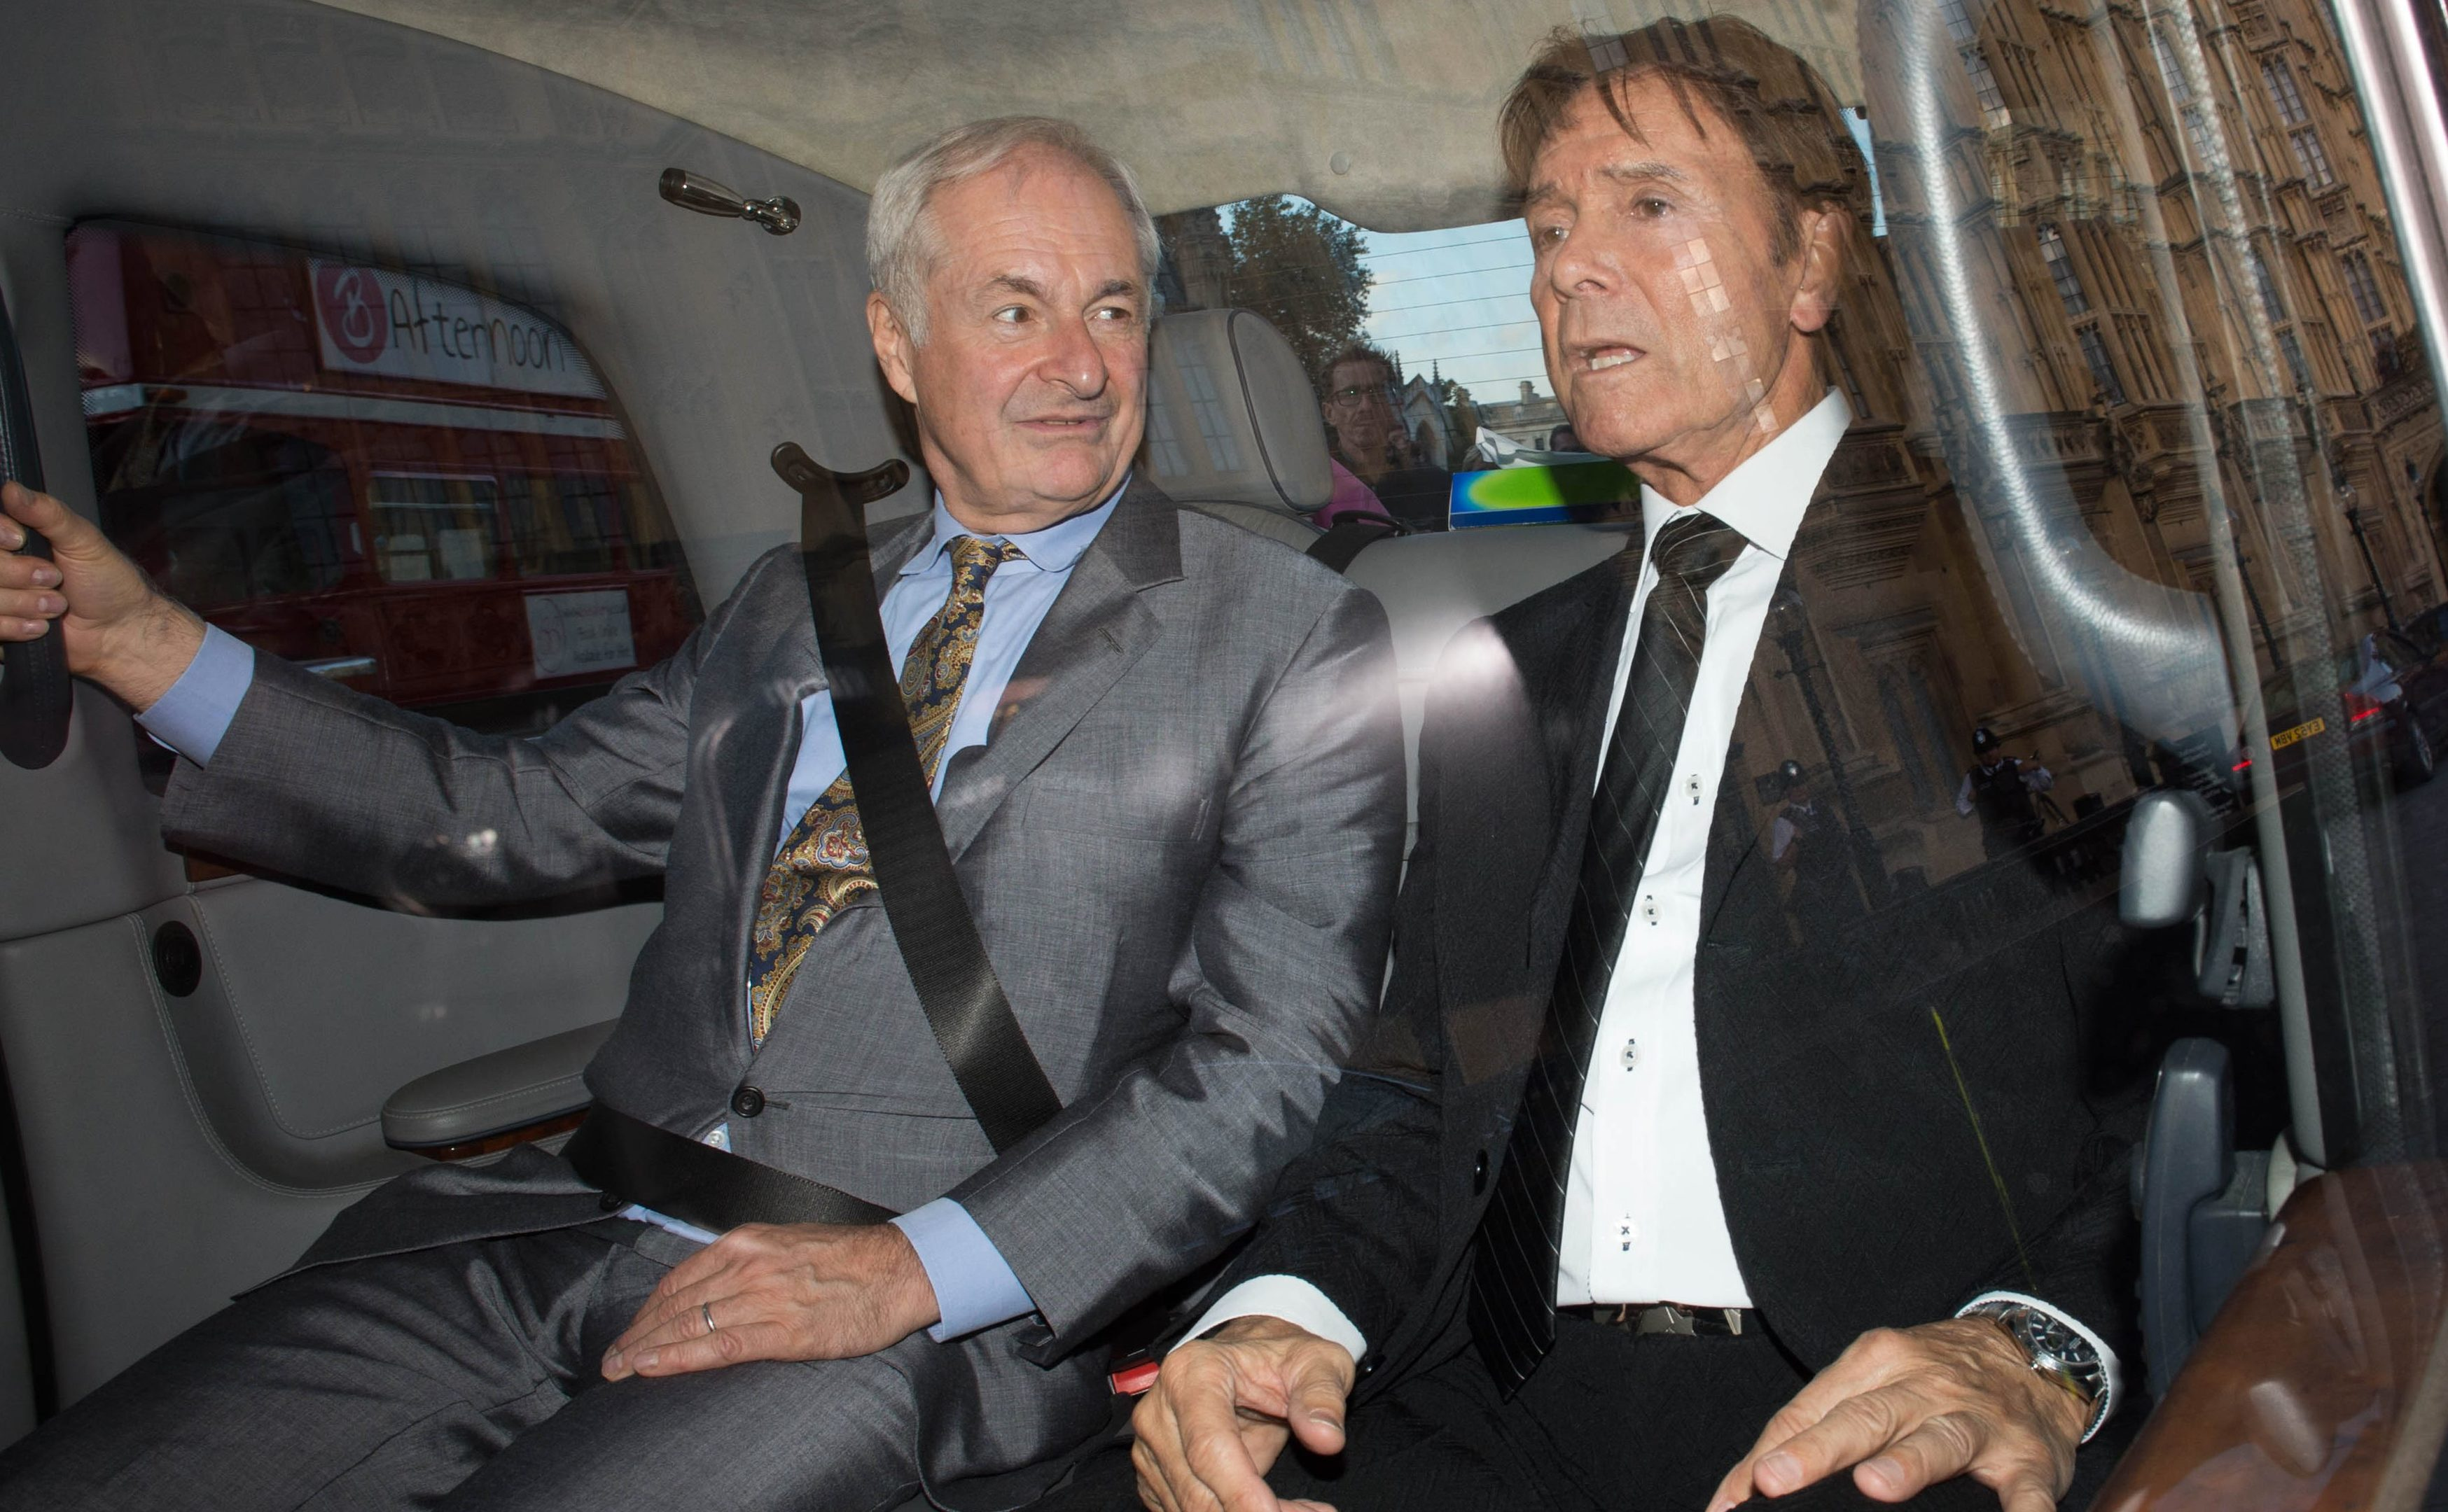 Paul Gambaccini and Sir Cliff Richard  leave the Palace of Westminster in central London, after meeting MPs and Peers to warn them of the impact of being wrongly accused of sex crimes.